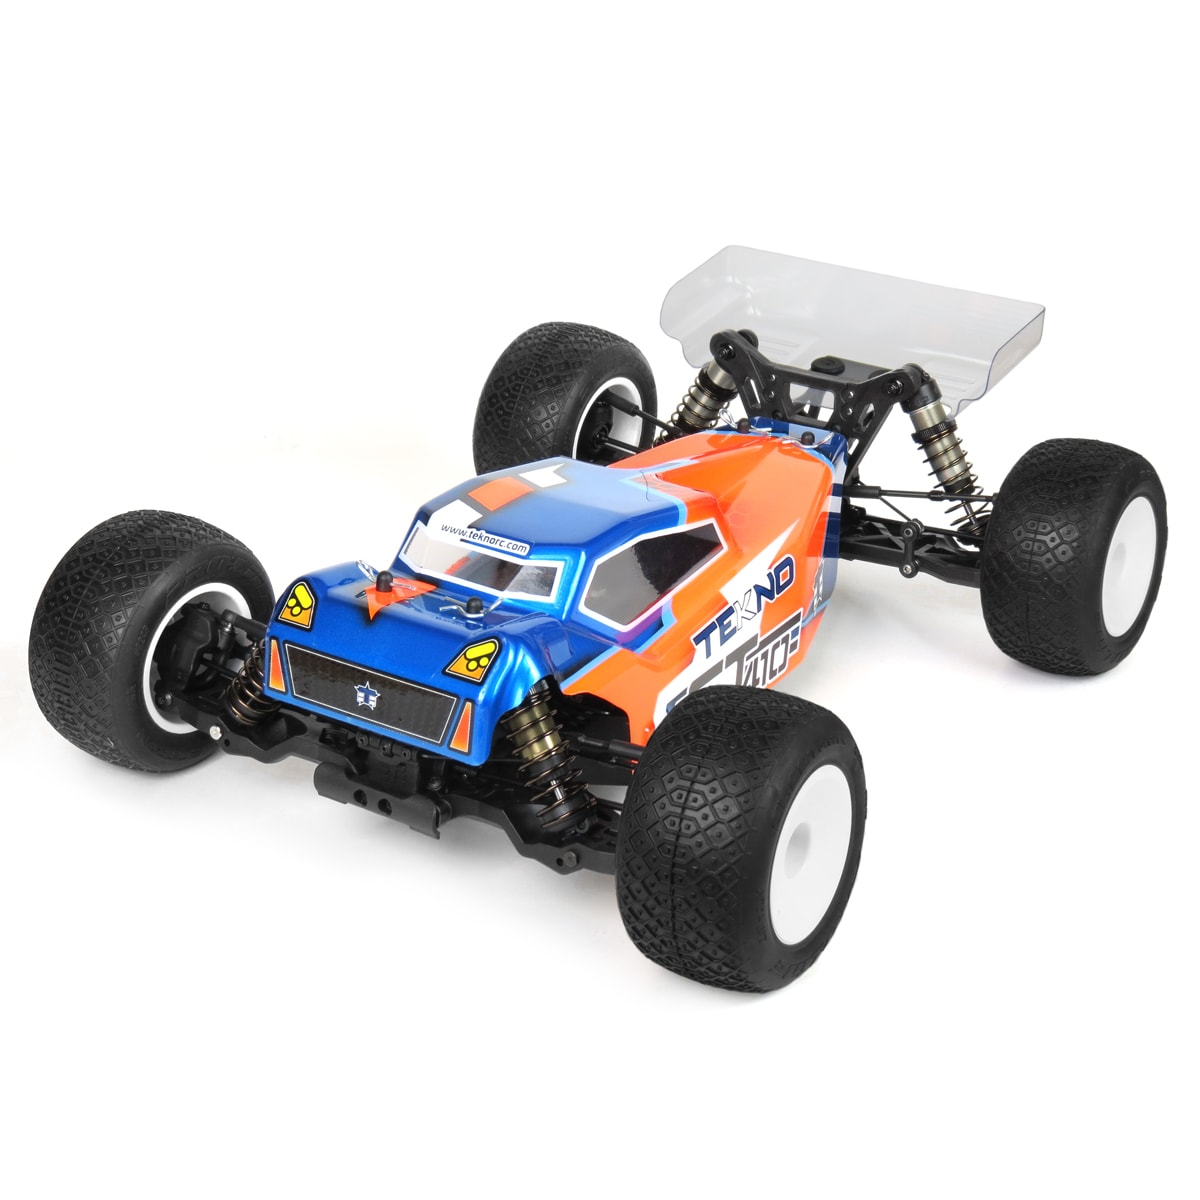 Tekno RC ET410 Truggy Kit